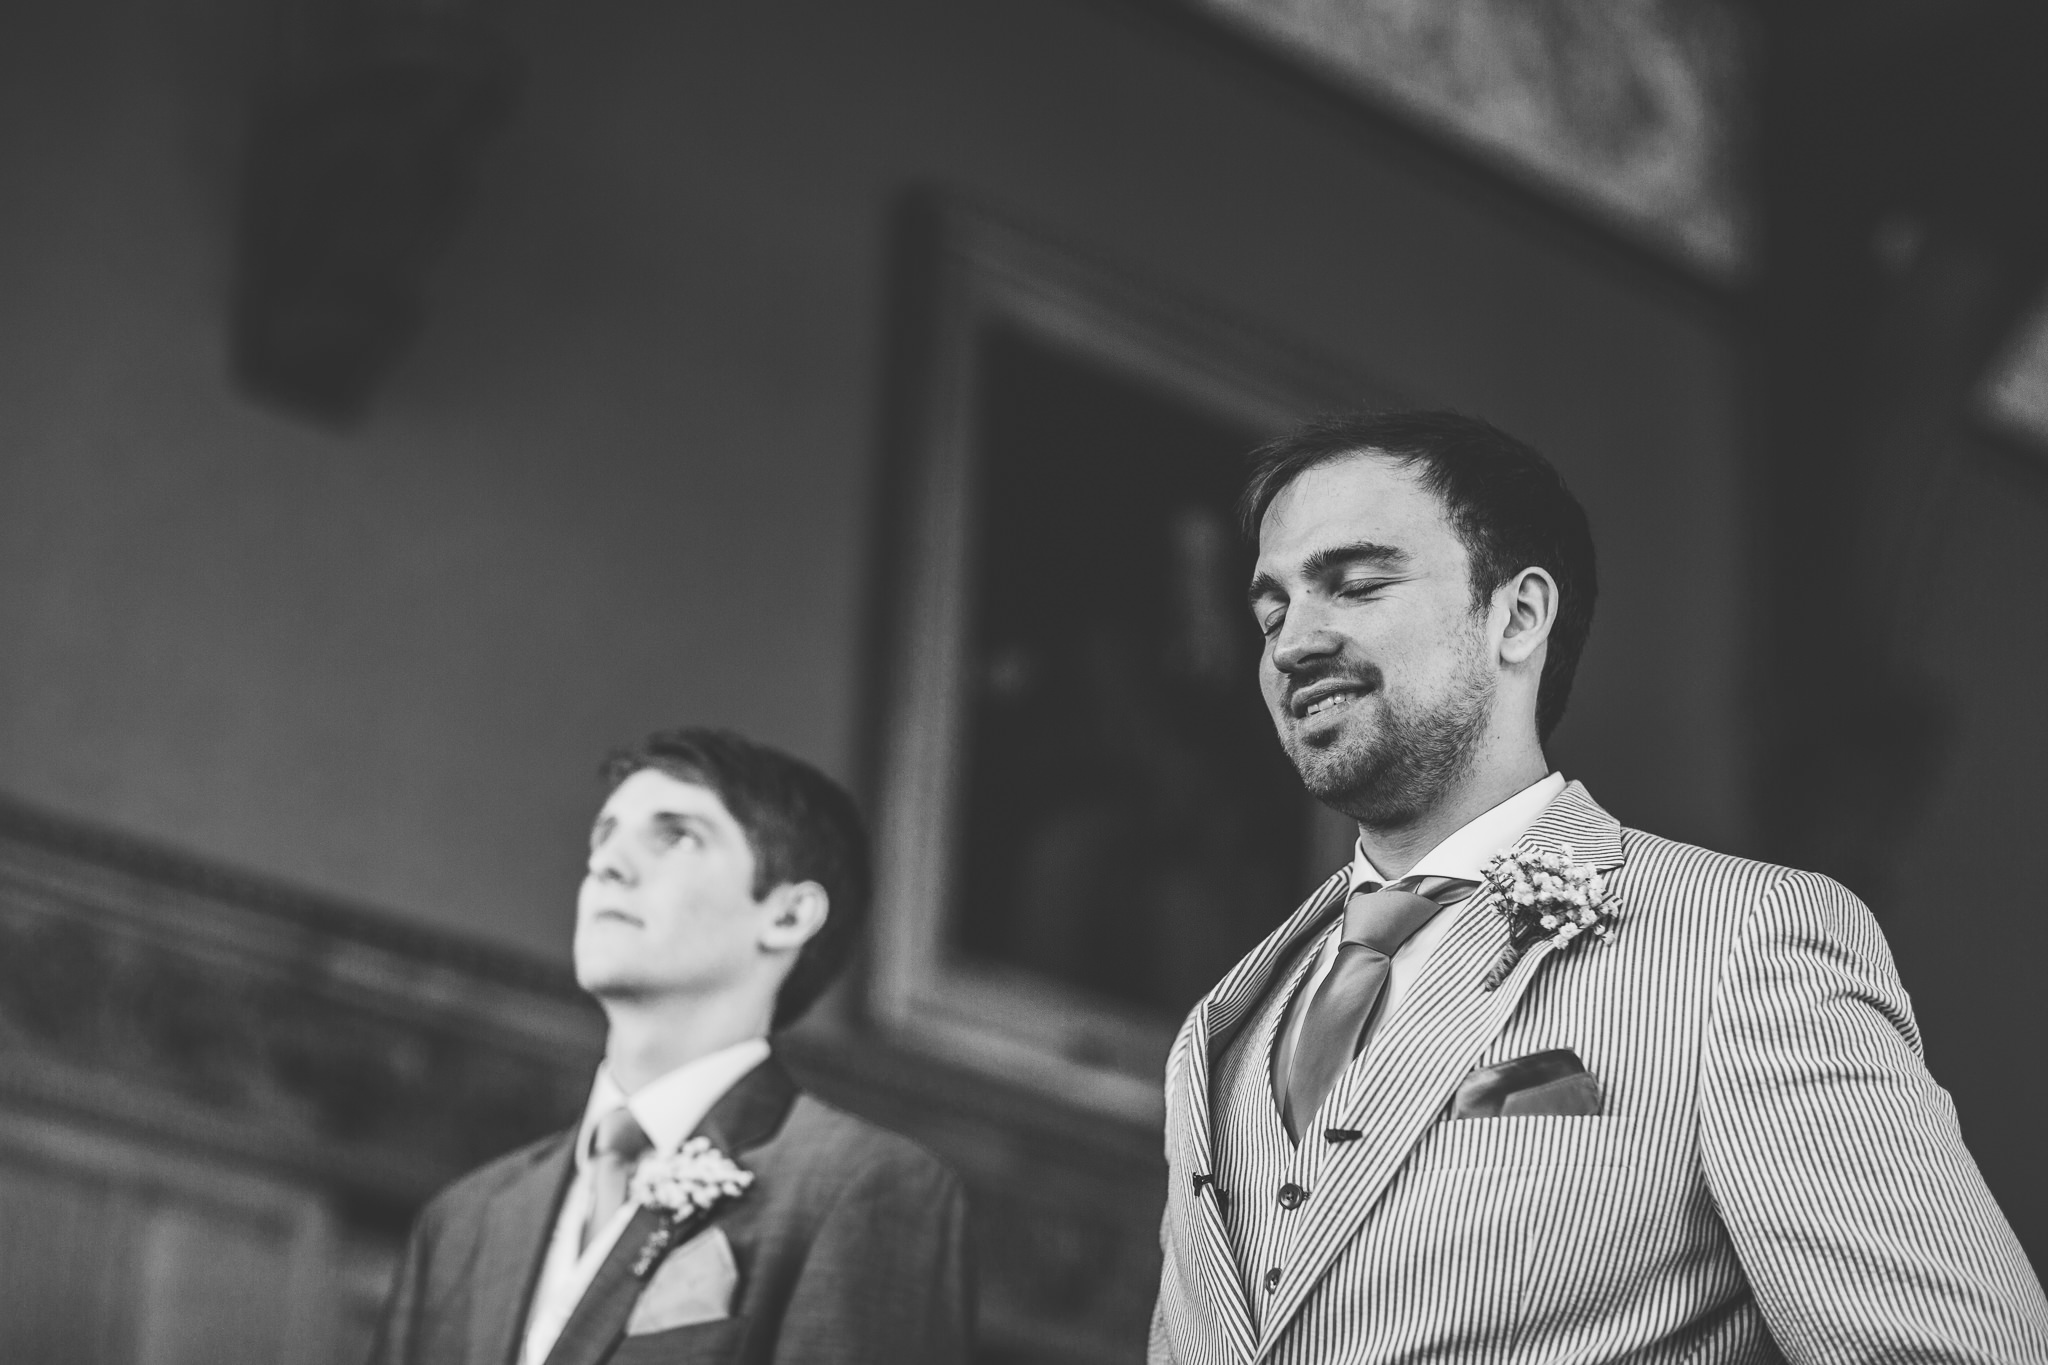 Chester-Cheshire-Creative-natural-wedding-photography-90025